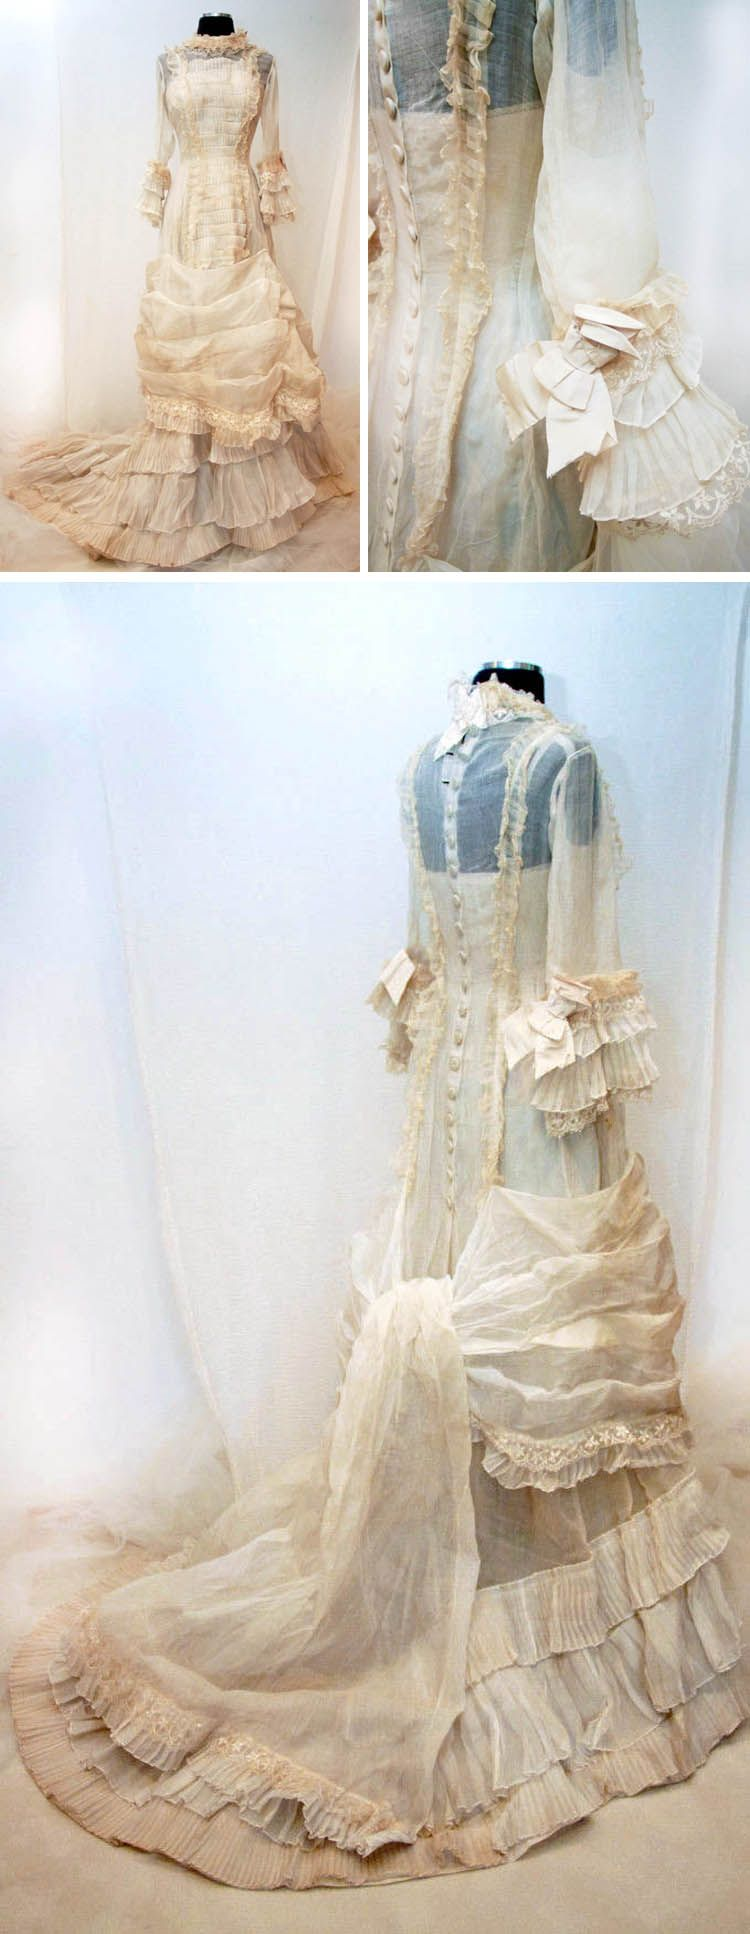 Cream colored vintage wedding dresses  Wedding gown late searly s Creamcolored organza with